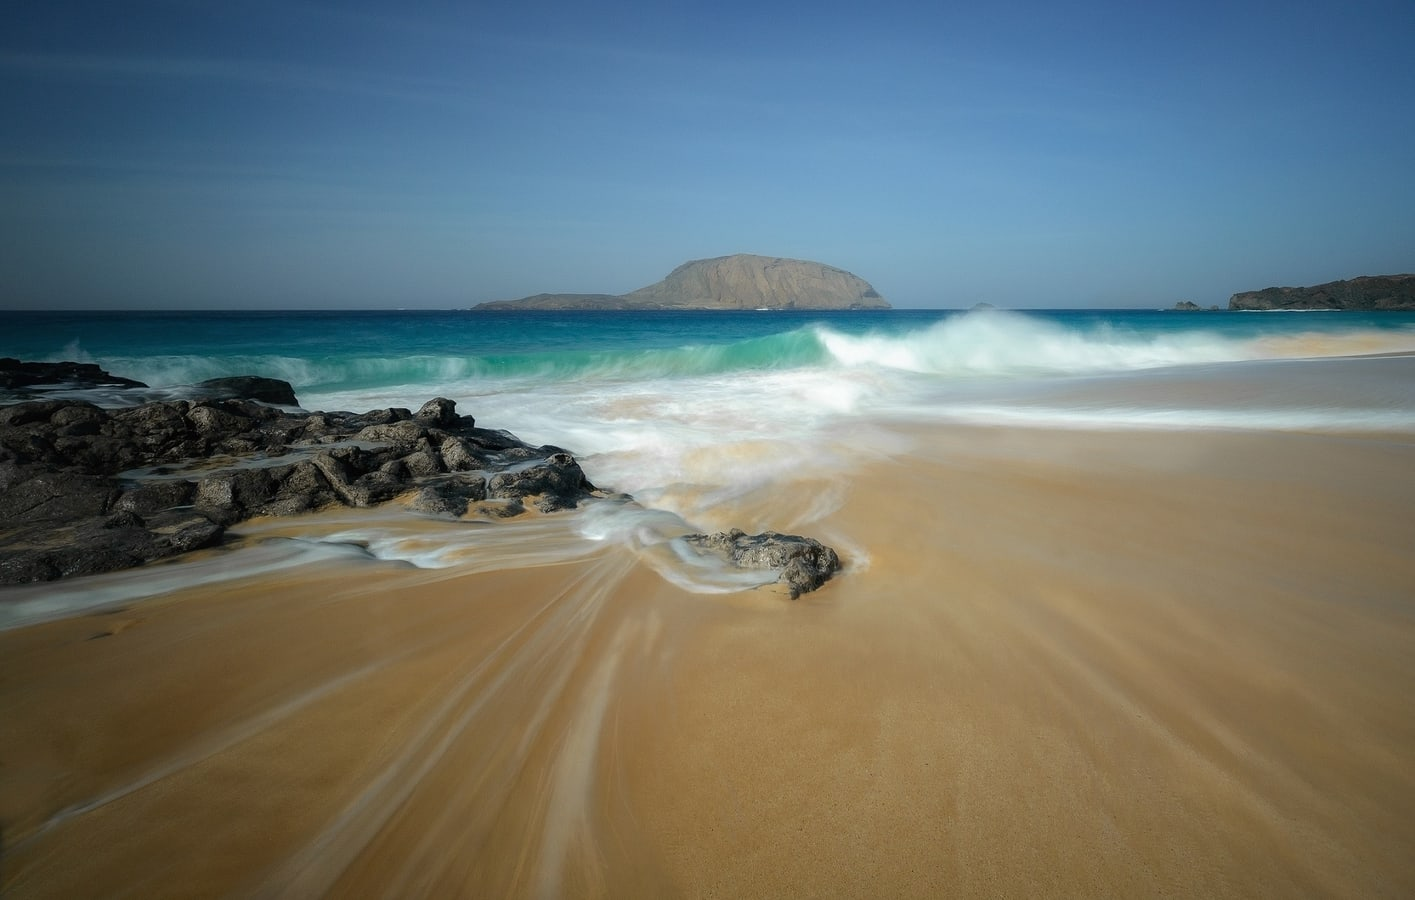 Long exposure photography in beach